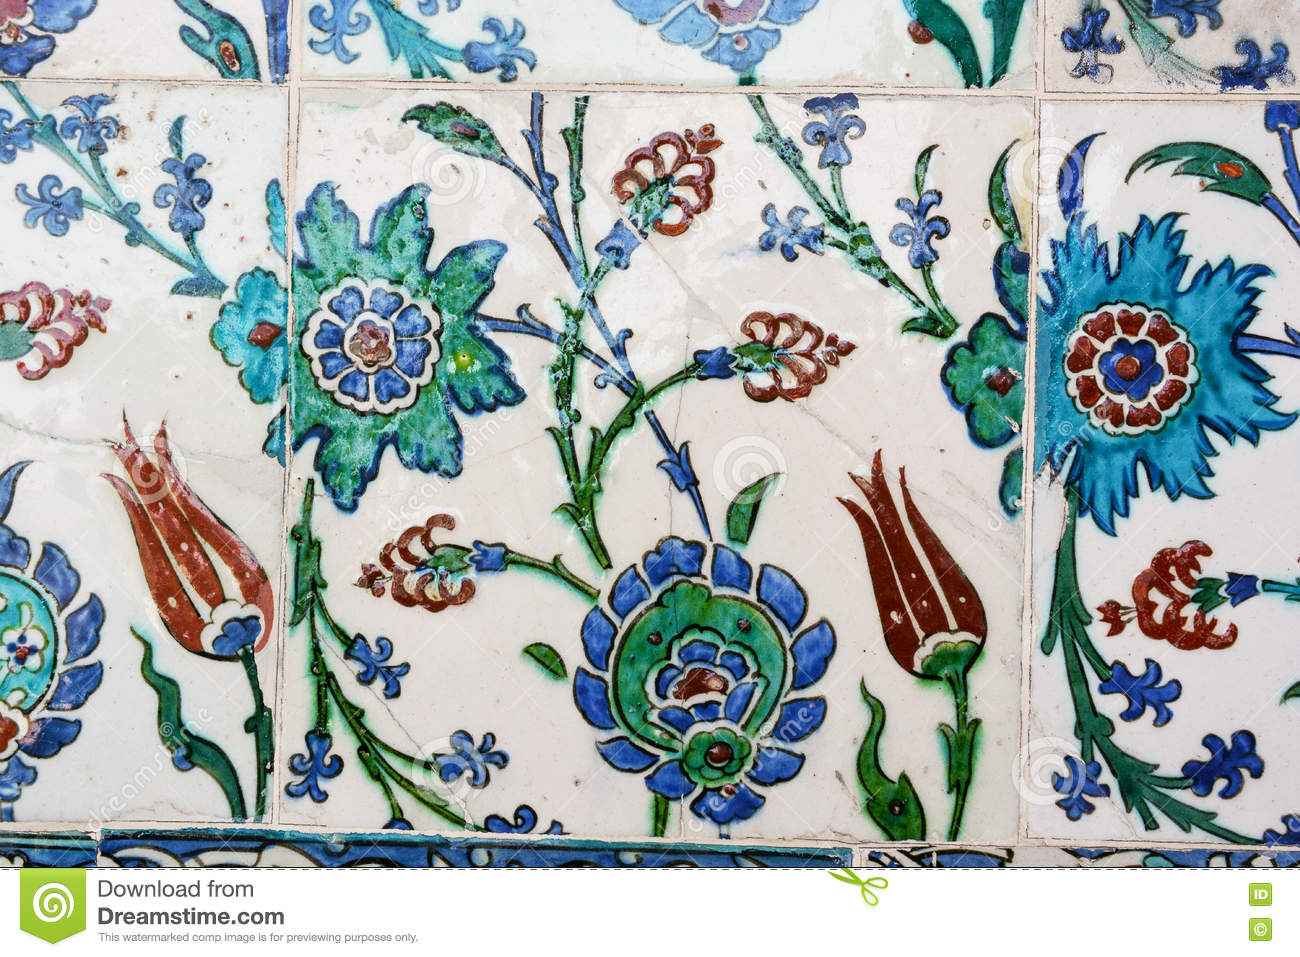 Ottoman Tiles stock photo. Image of decoration, ceramic - 70505350